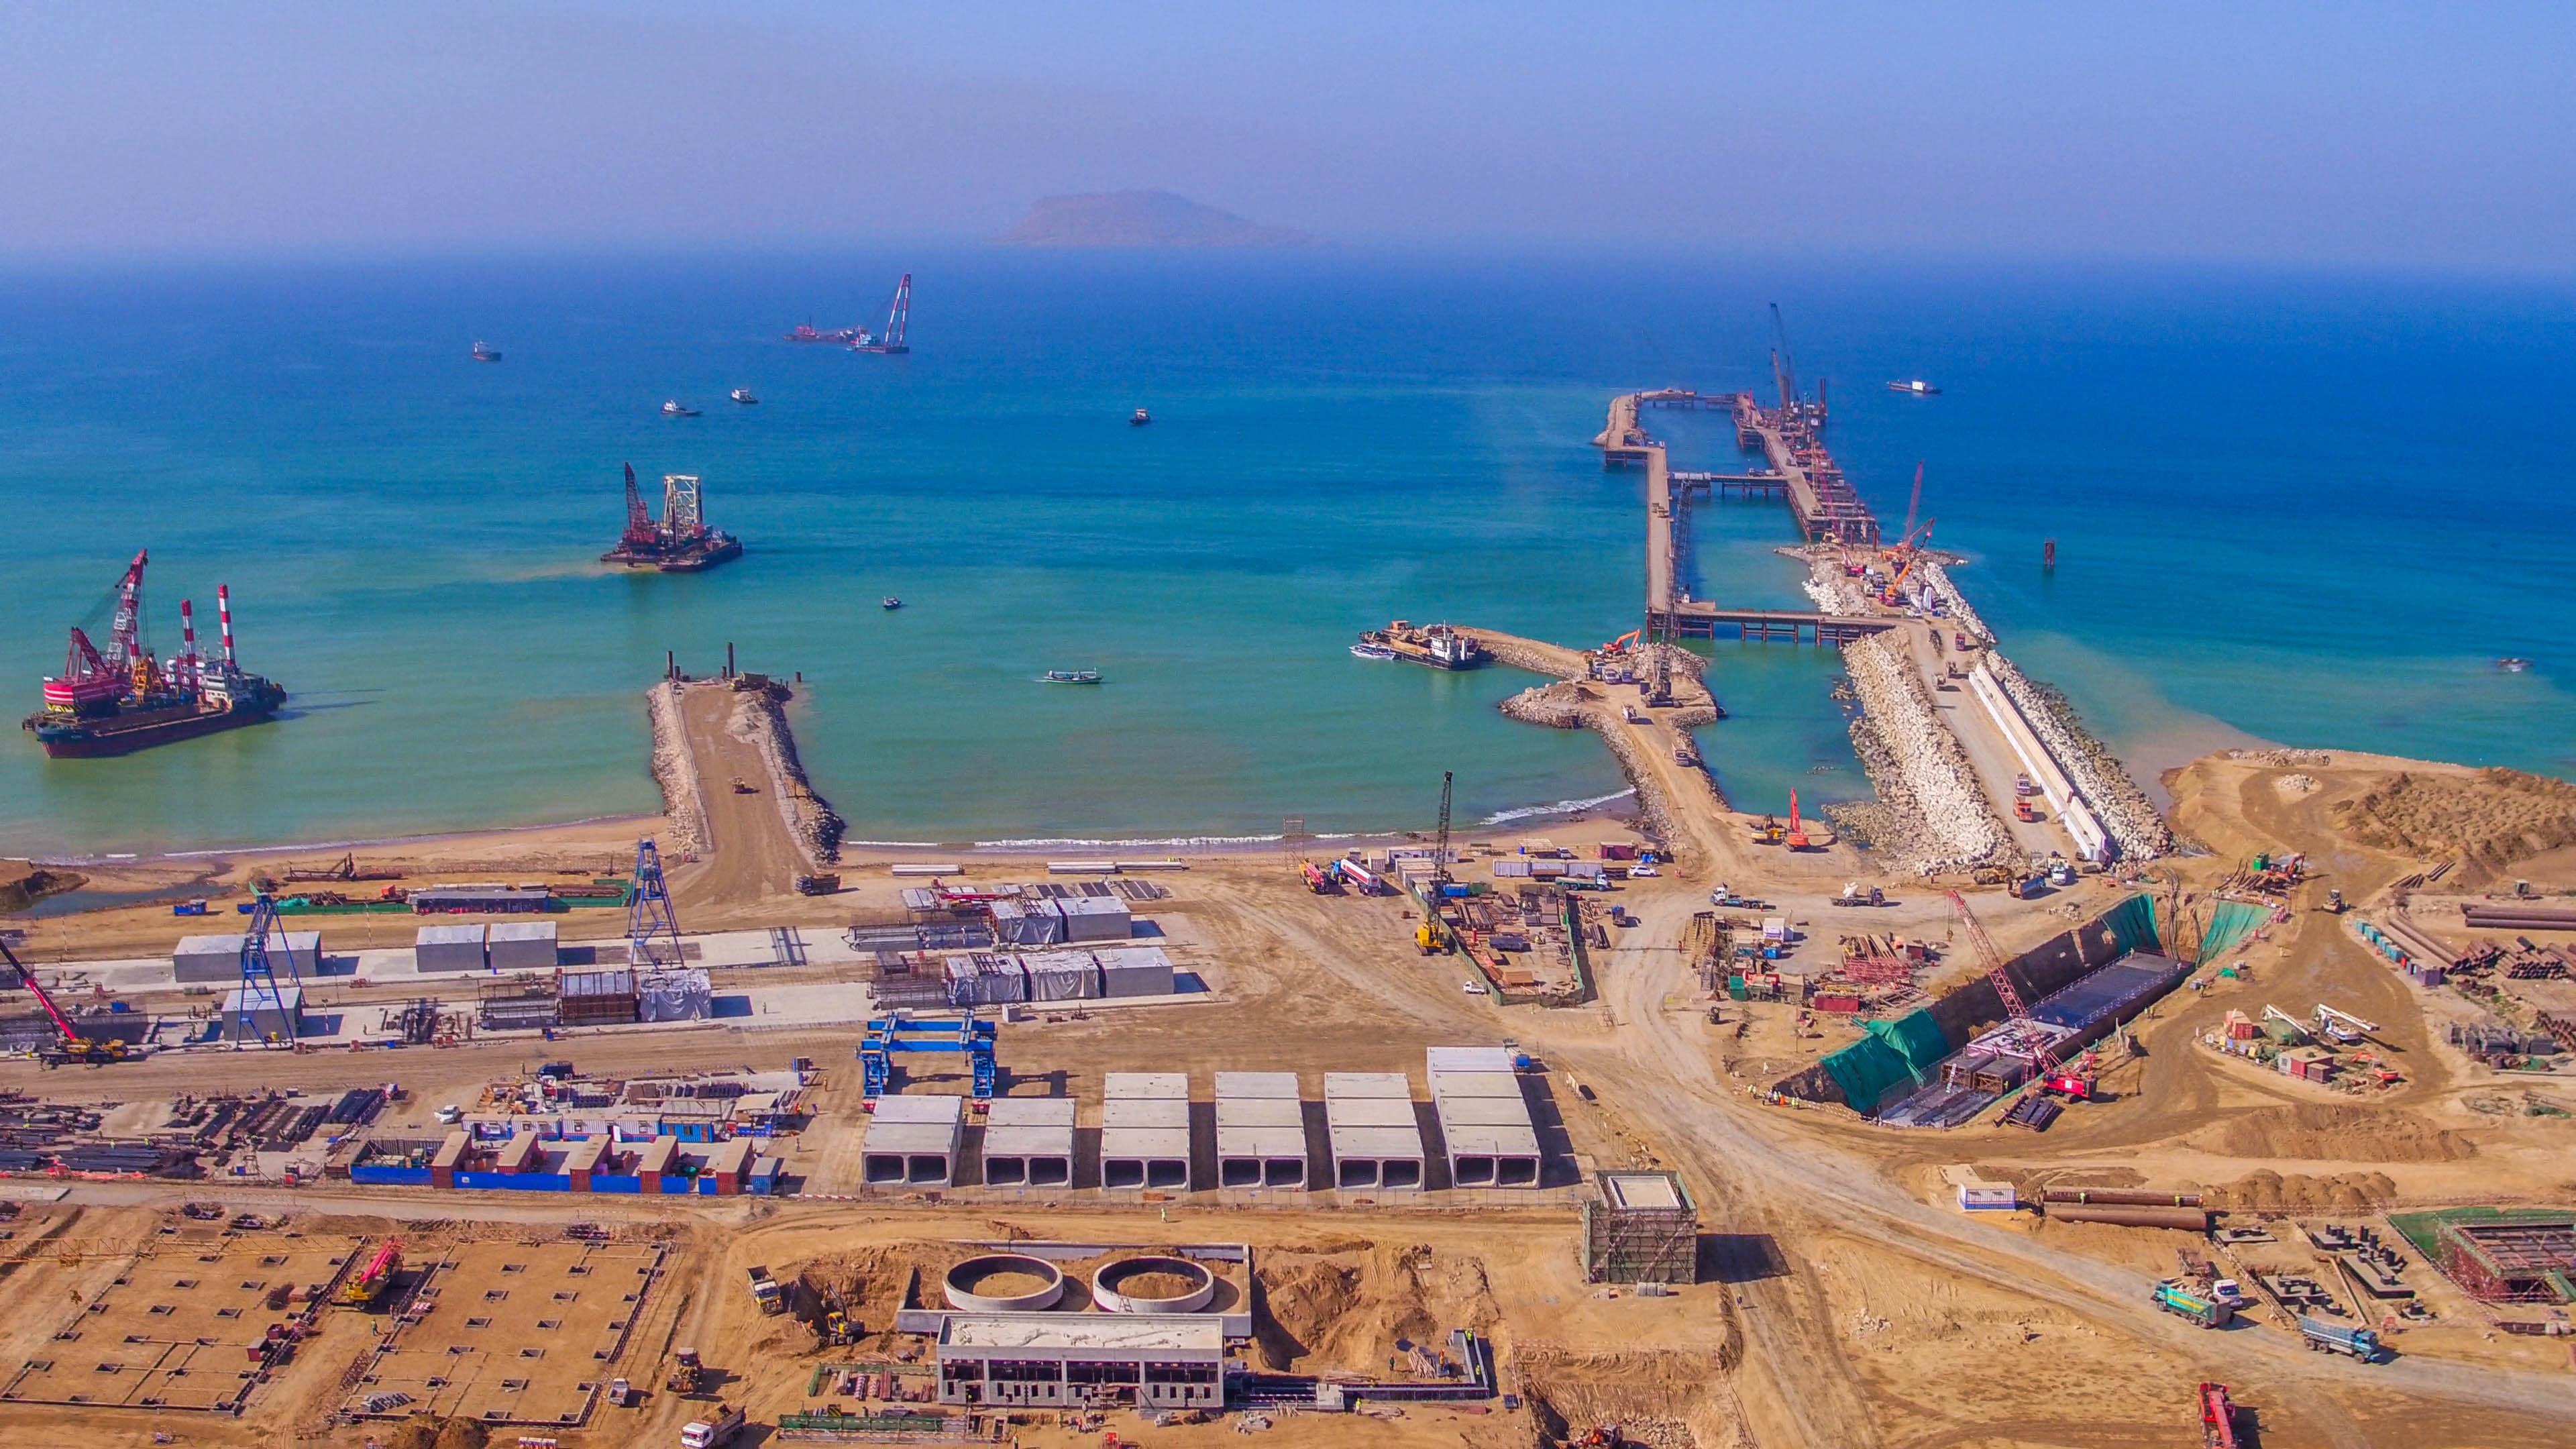 The photo shows Hub coal-fired power plant project that is under construction in Pakistan's southwestern province of Balochistan. [Photo courtesy of State Power Investment Corporation]